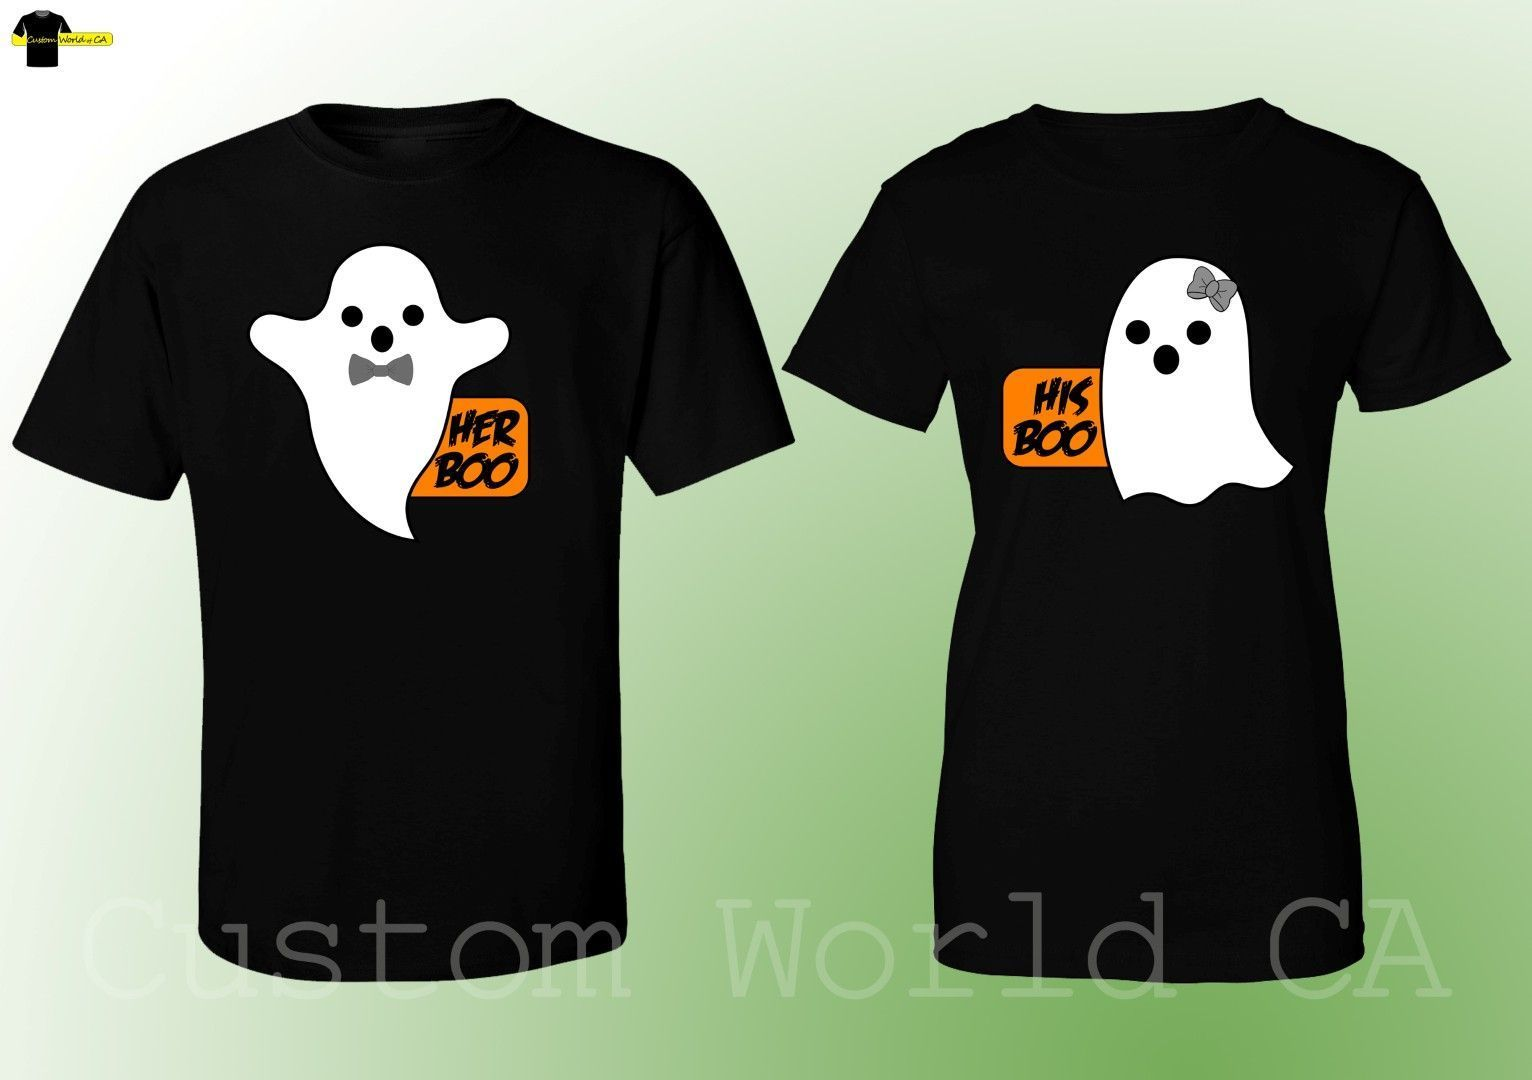 2019 Hot Sale 100% cotton Halloween Costumes His Boo Her Boo Cute Matching T Shirts Couples Scary (Black) Tee shirt